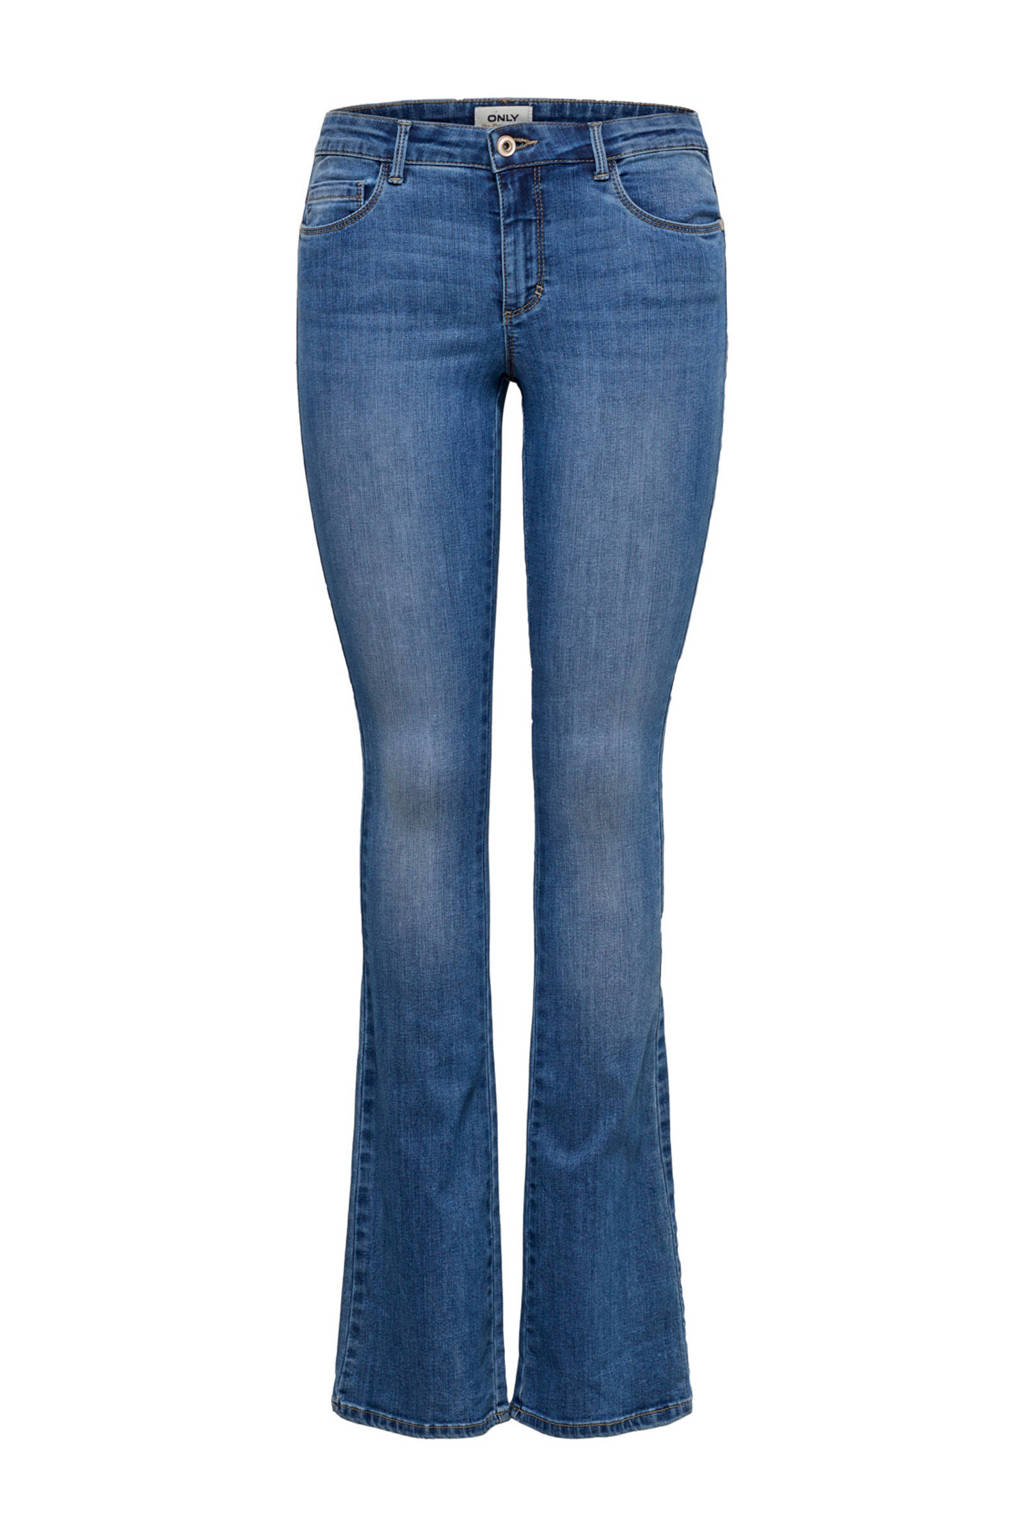 ONLY flared jeans, Blauw